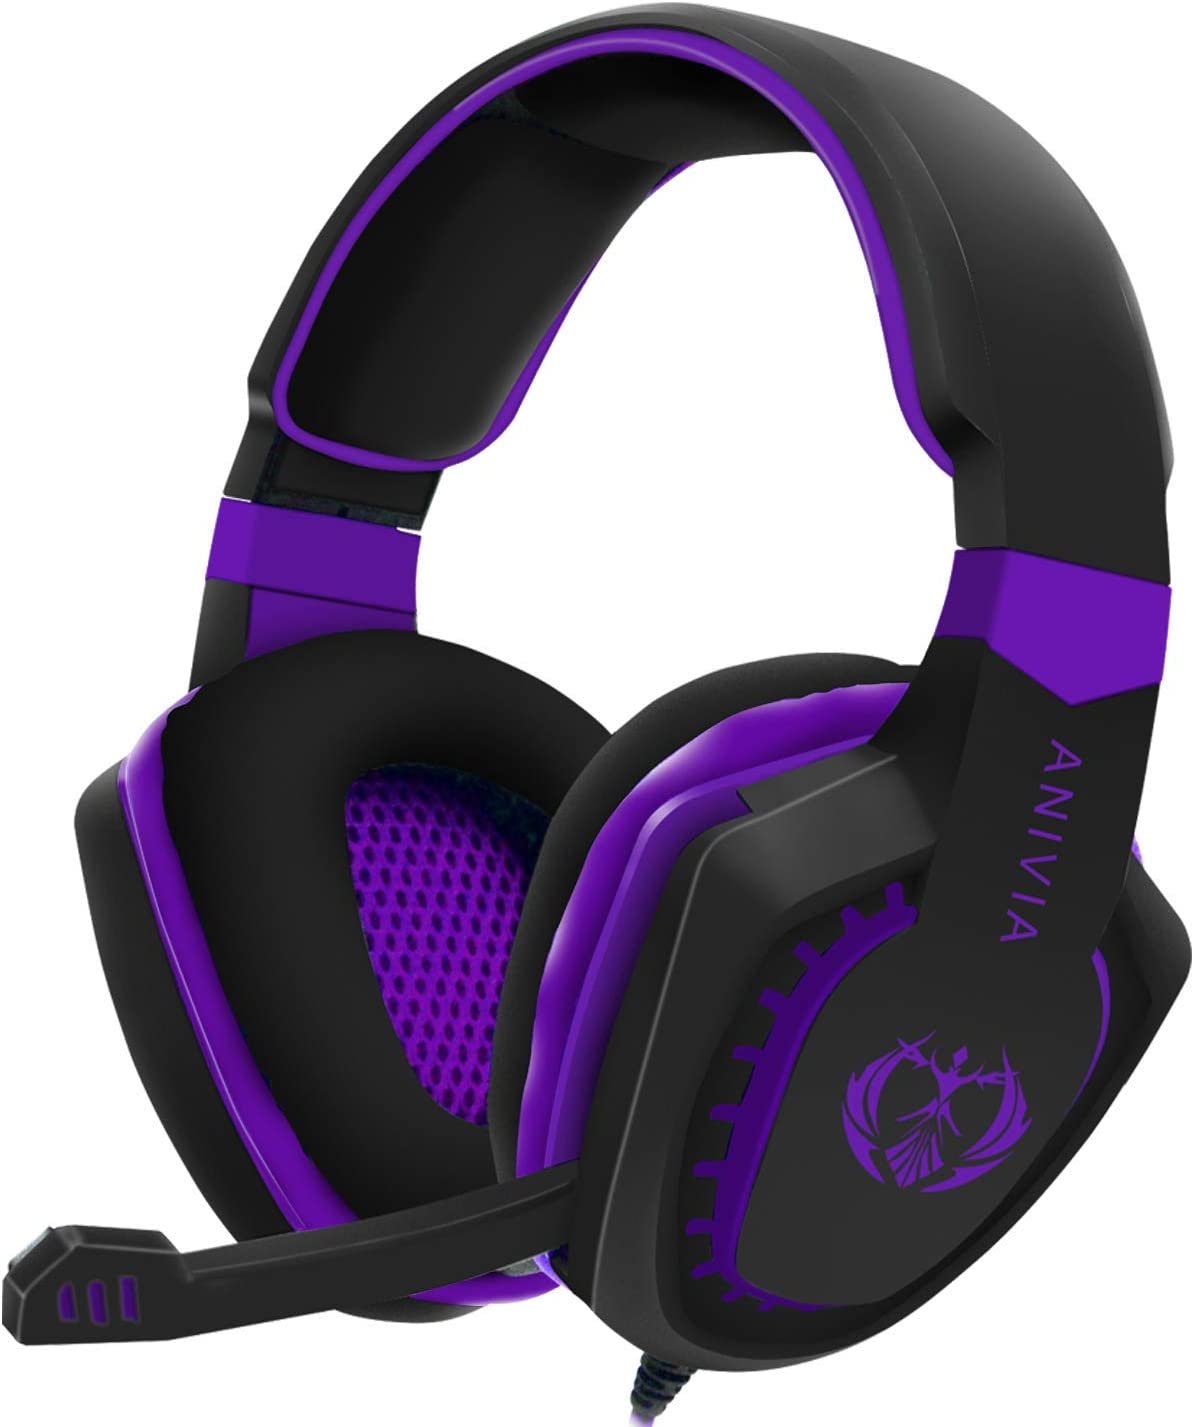 Gaming Headset Bass Surround Sound Stereo PS4 Headset with Flexible Microphone Volume Control Noise Canceling Mic Over-Ear Headphones Compatible for PS4 Xbox one Laptop PC Mac Purple (Renewed)